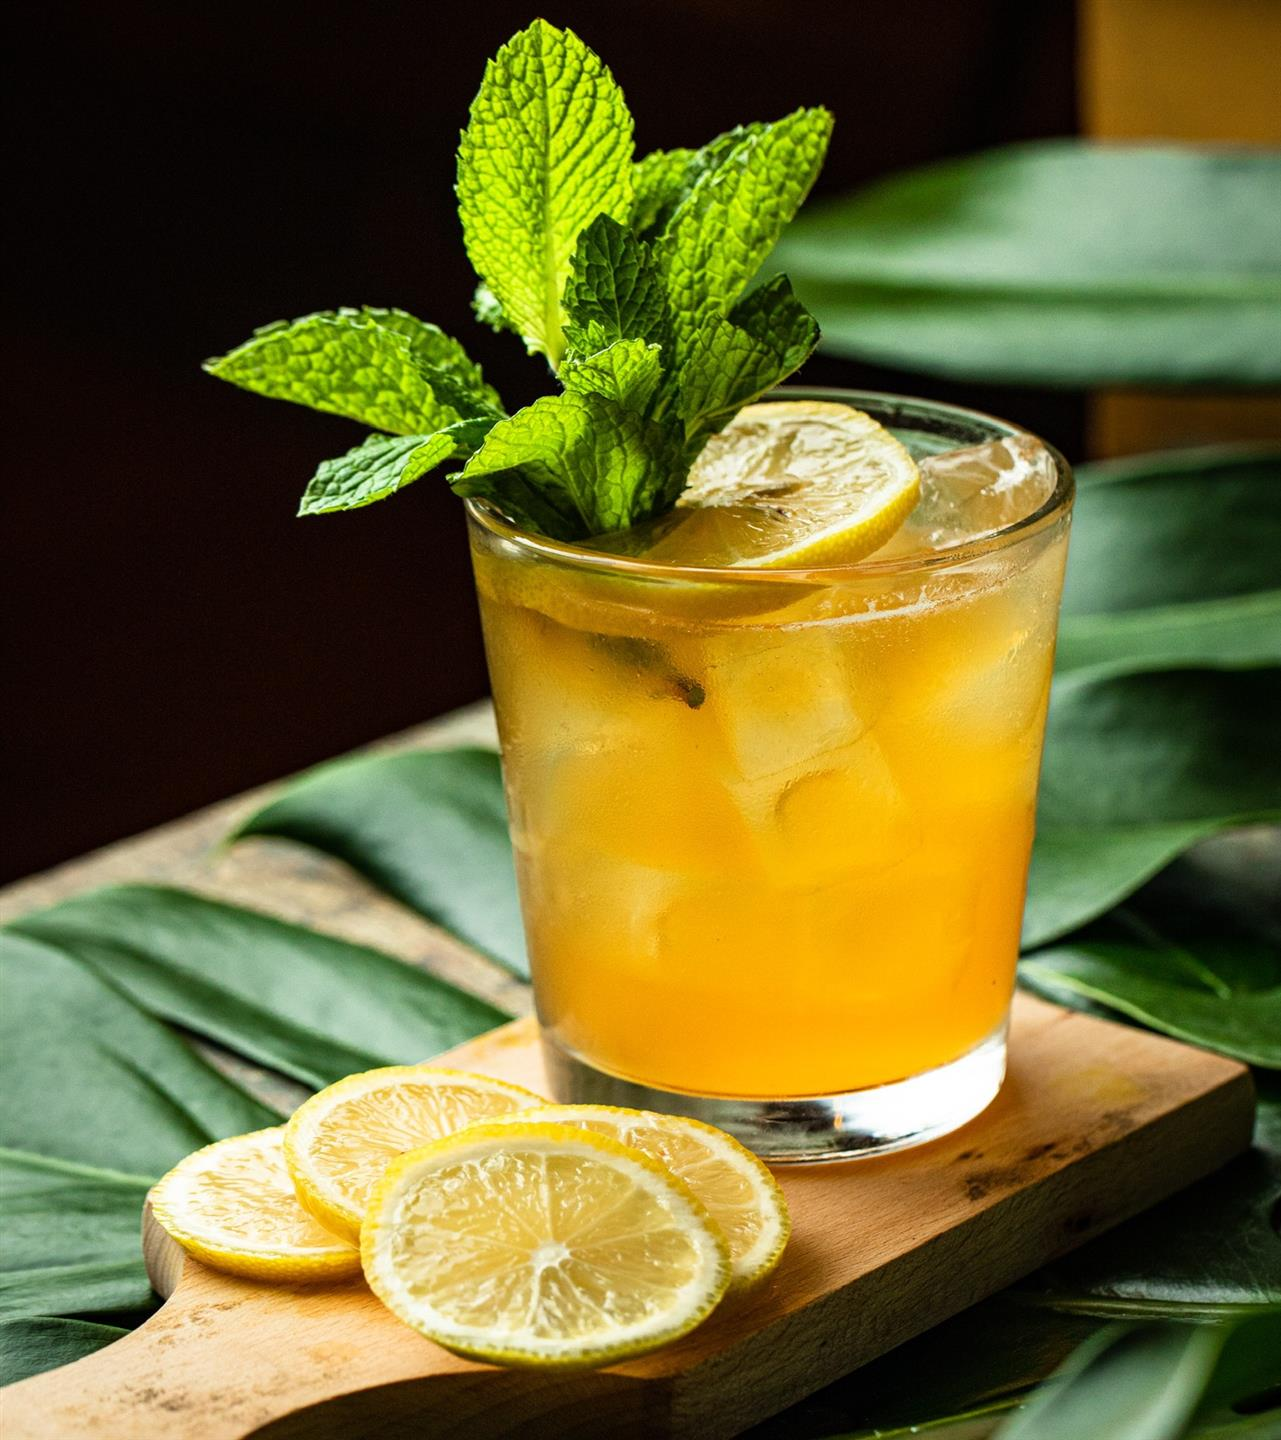 cocktail in a glass cup garnished with lemon slice and mint leaves